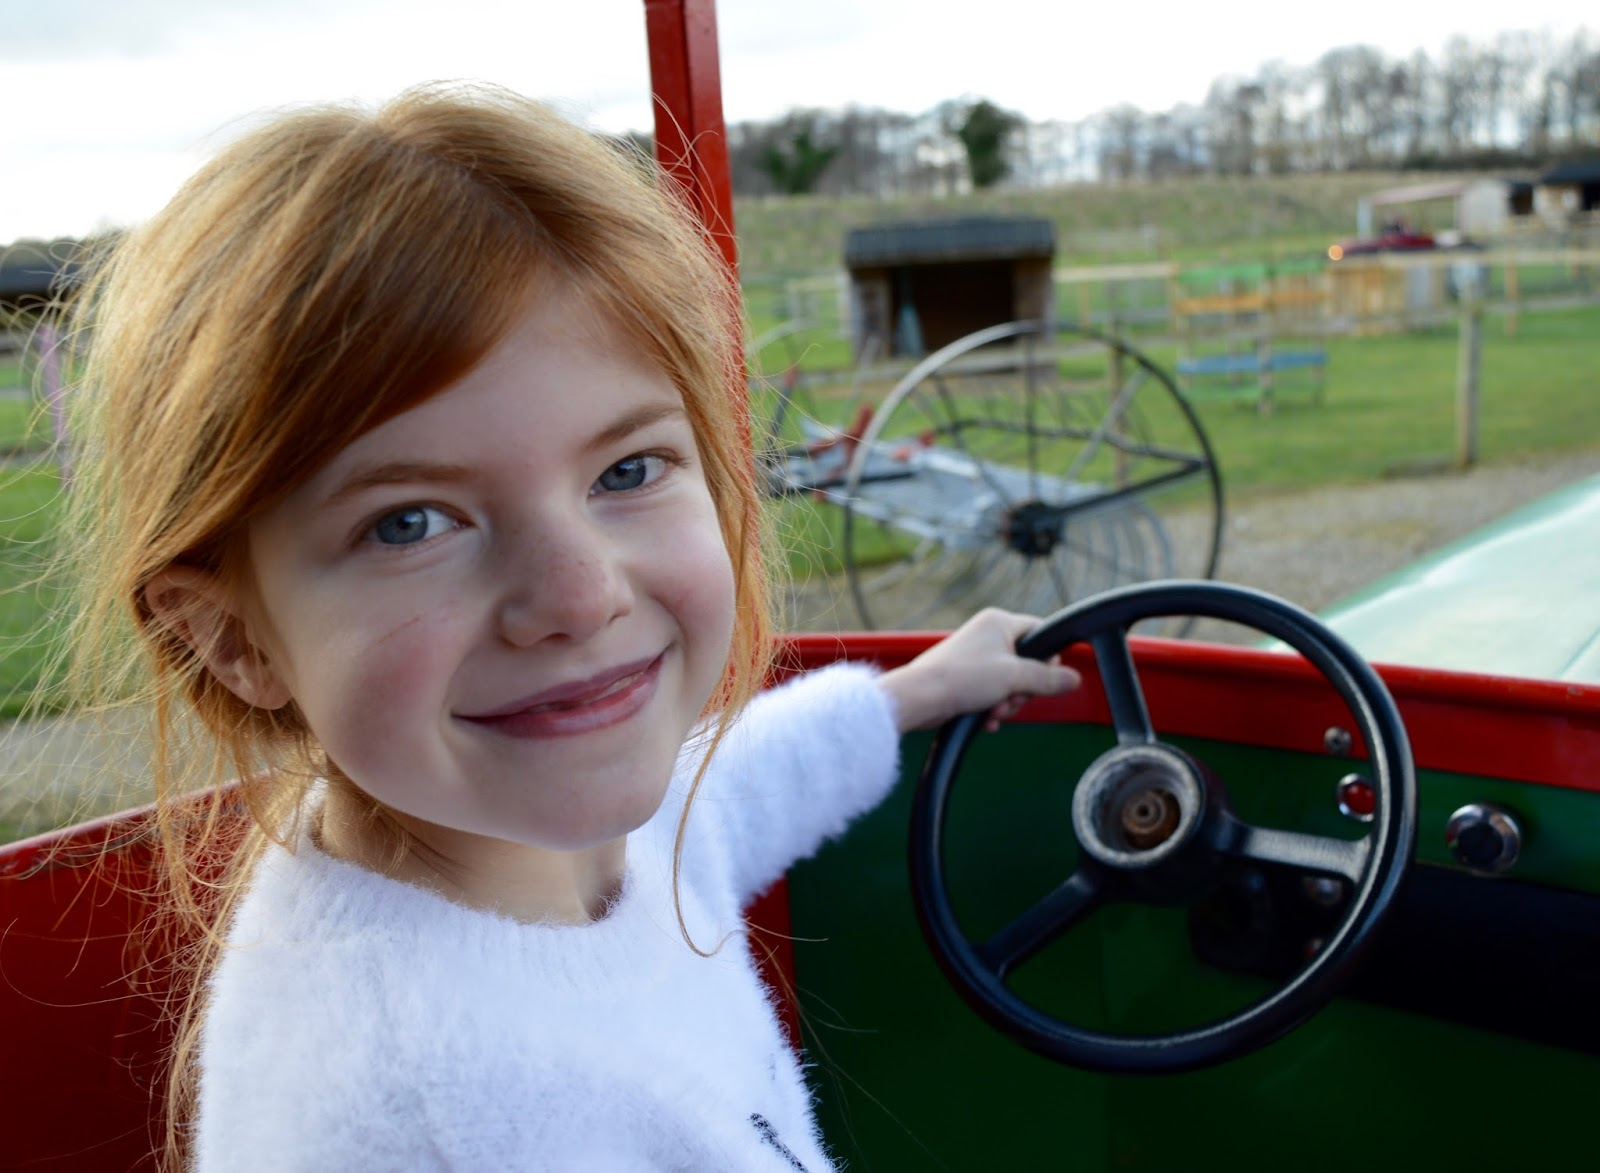 Visiting Angry Birds Activity Park at Lightwater Valley, North Yorkshire - Eagle creek farm ride